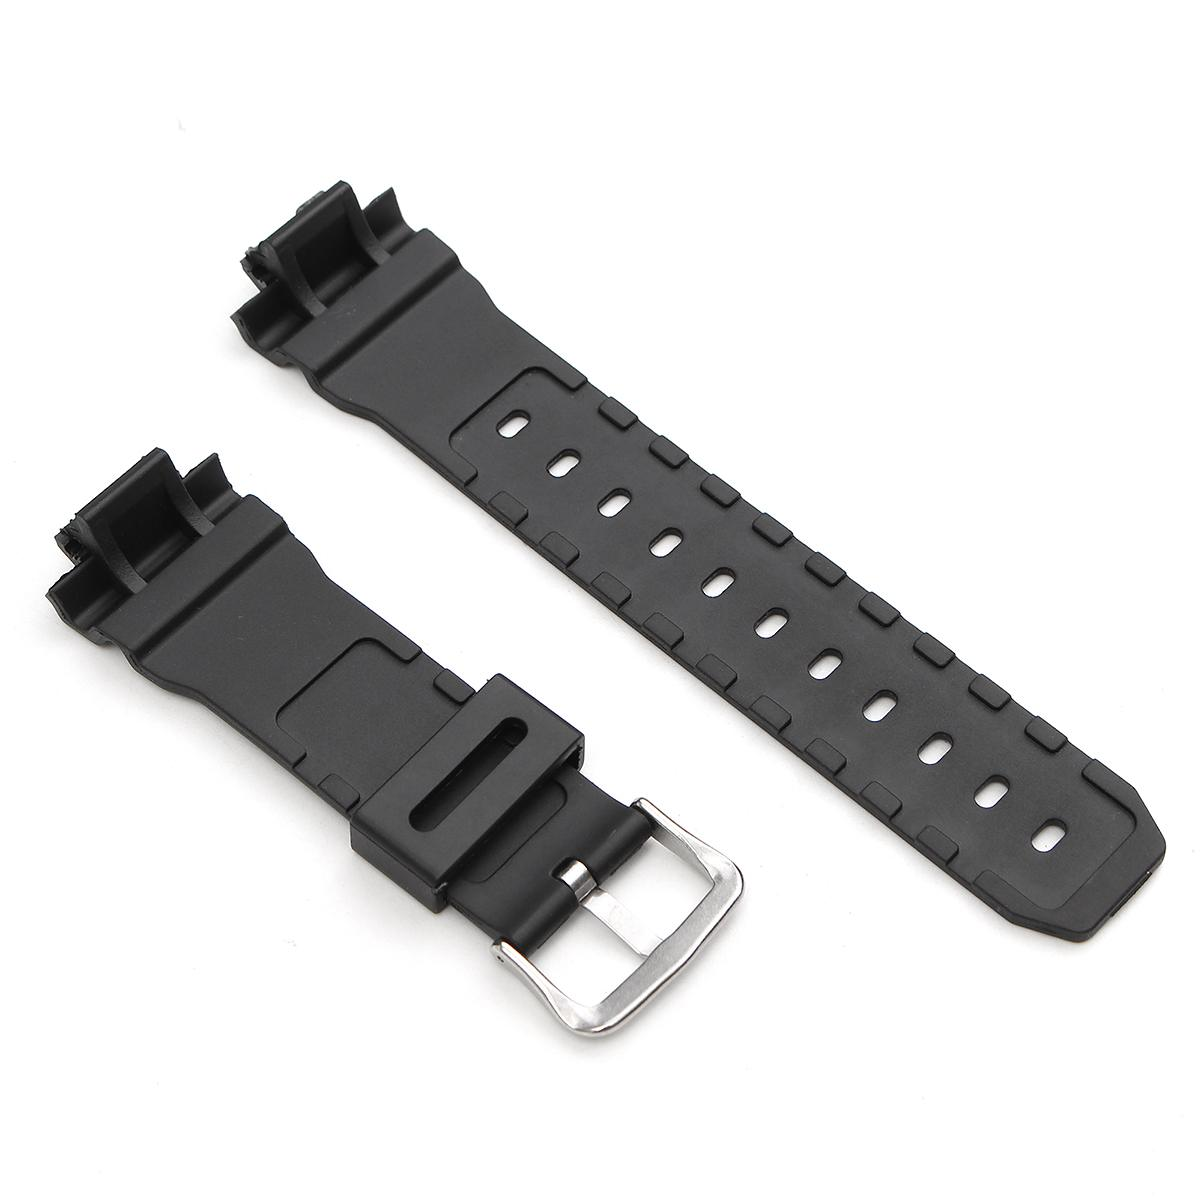 NEW Black Watch Band Strap Replacement For G Shock DW-6900 W/ Ear Batch Needles For Casio WatchBand Accessories Soft Rubber